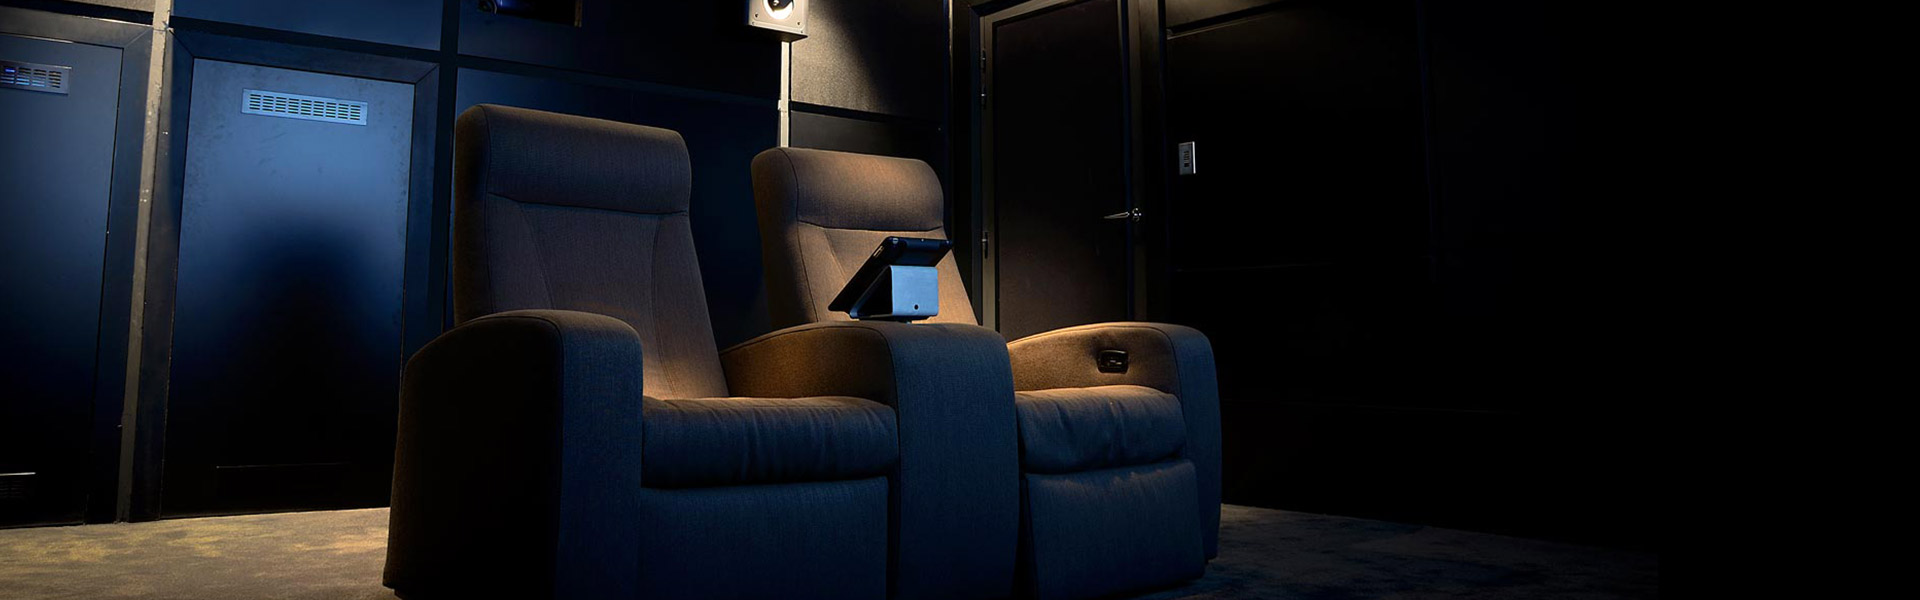 dbox-home-cinema-poltrone-2